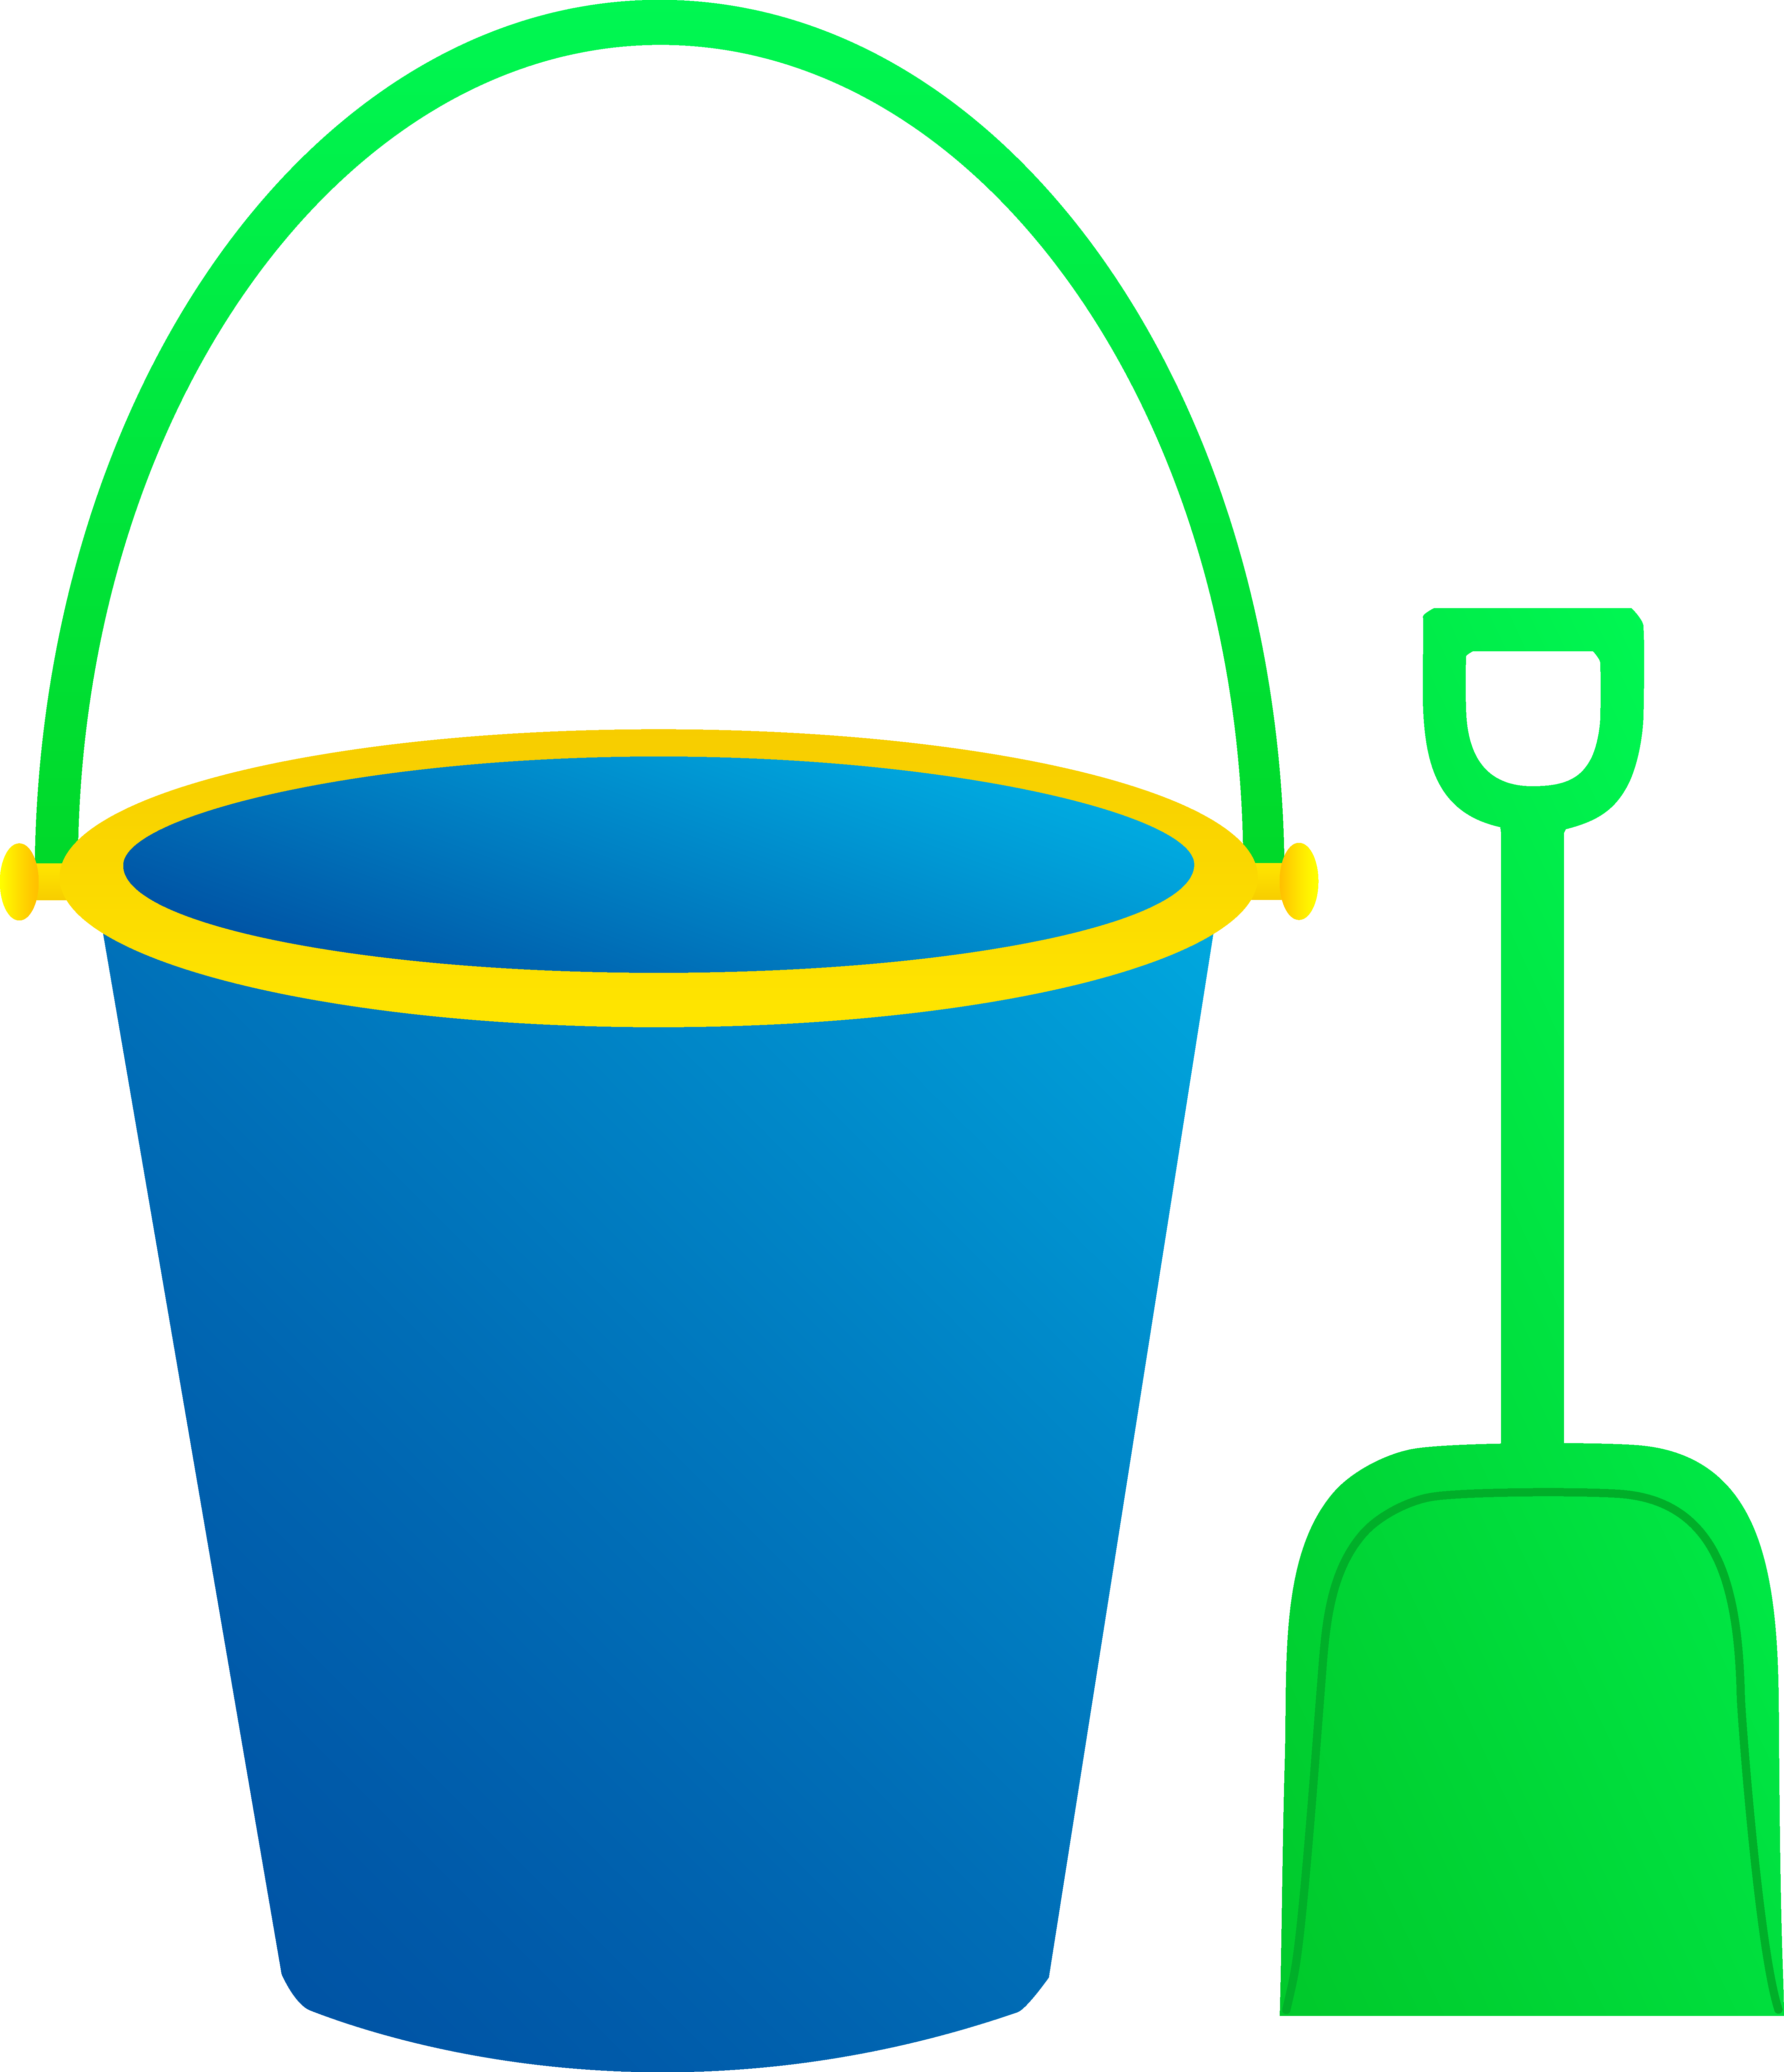 Directors clipart images amp pictures becuo - Bucket 20clipart